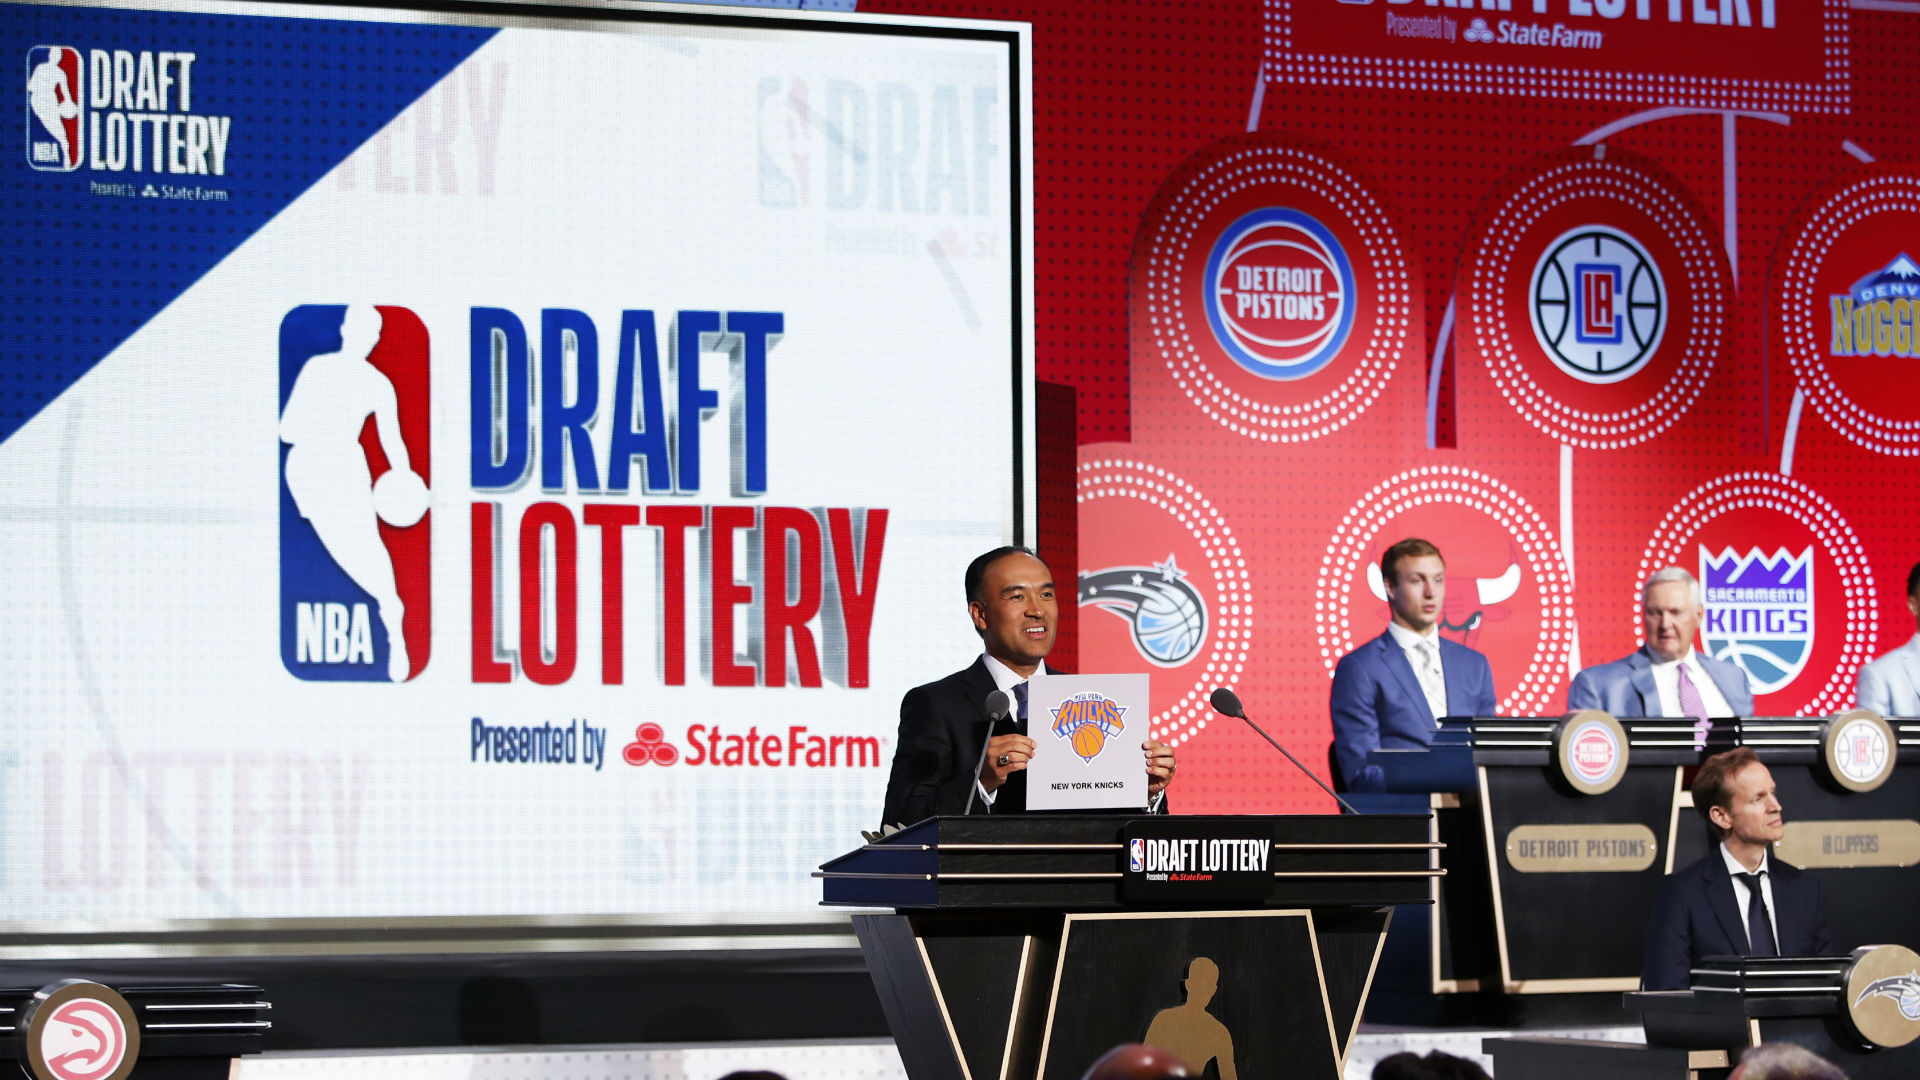 NBA Draft 2019: What are the odds for the 2019 NBA Draft Lottery? | NBA.com